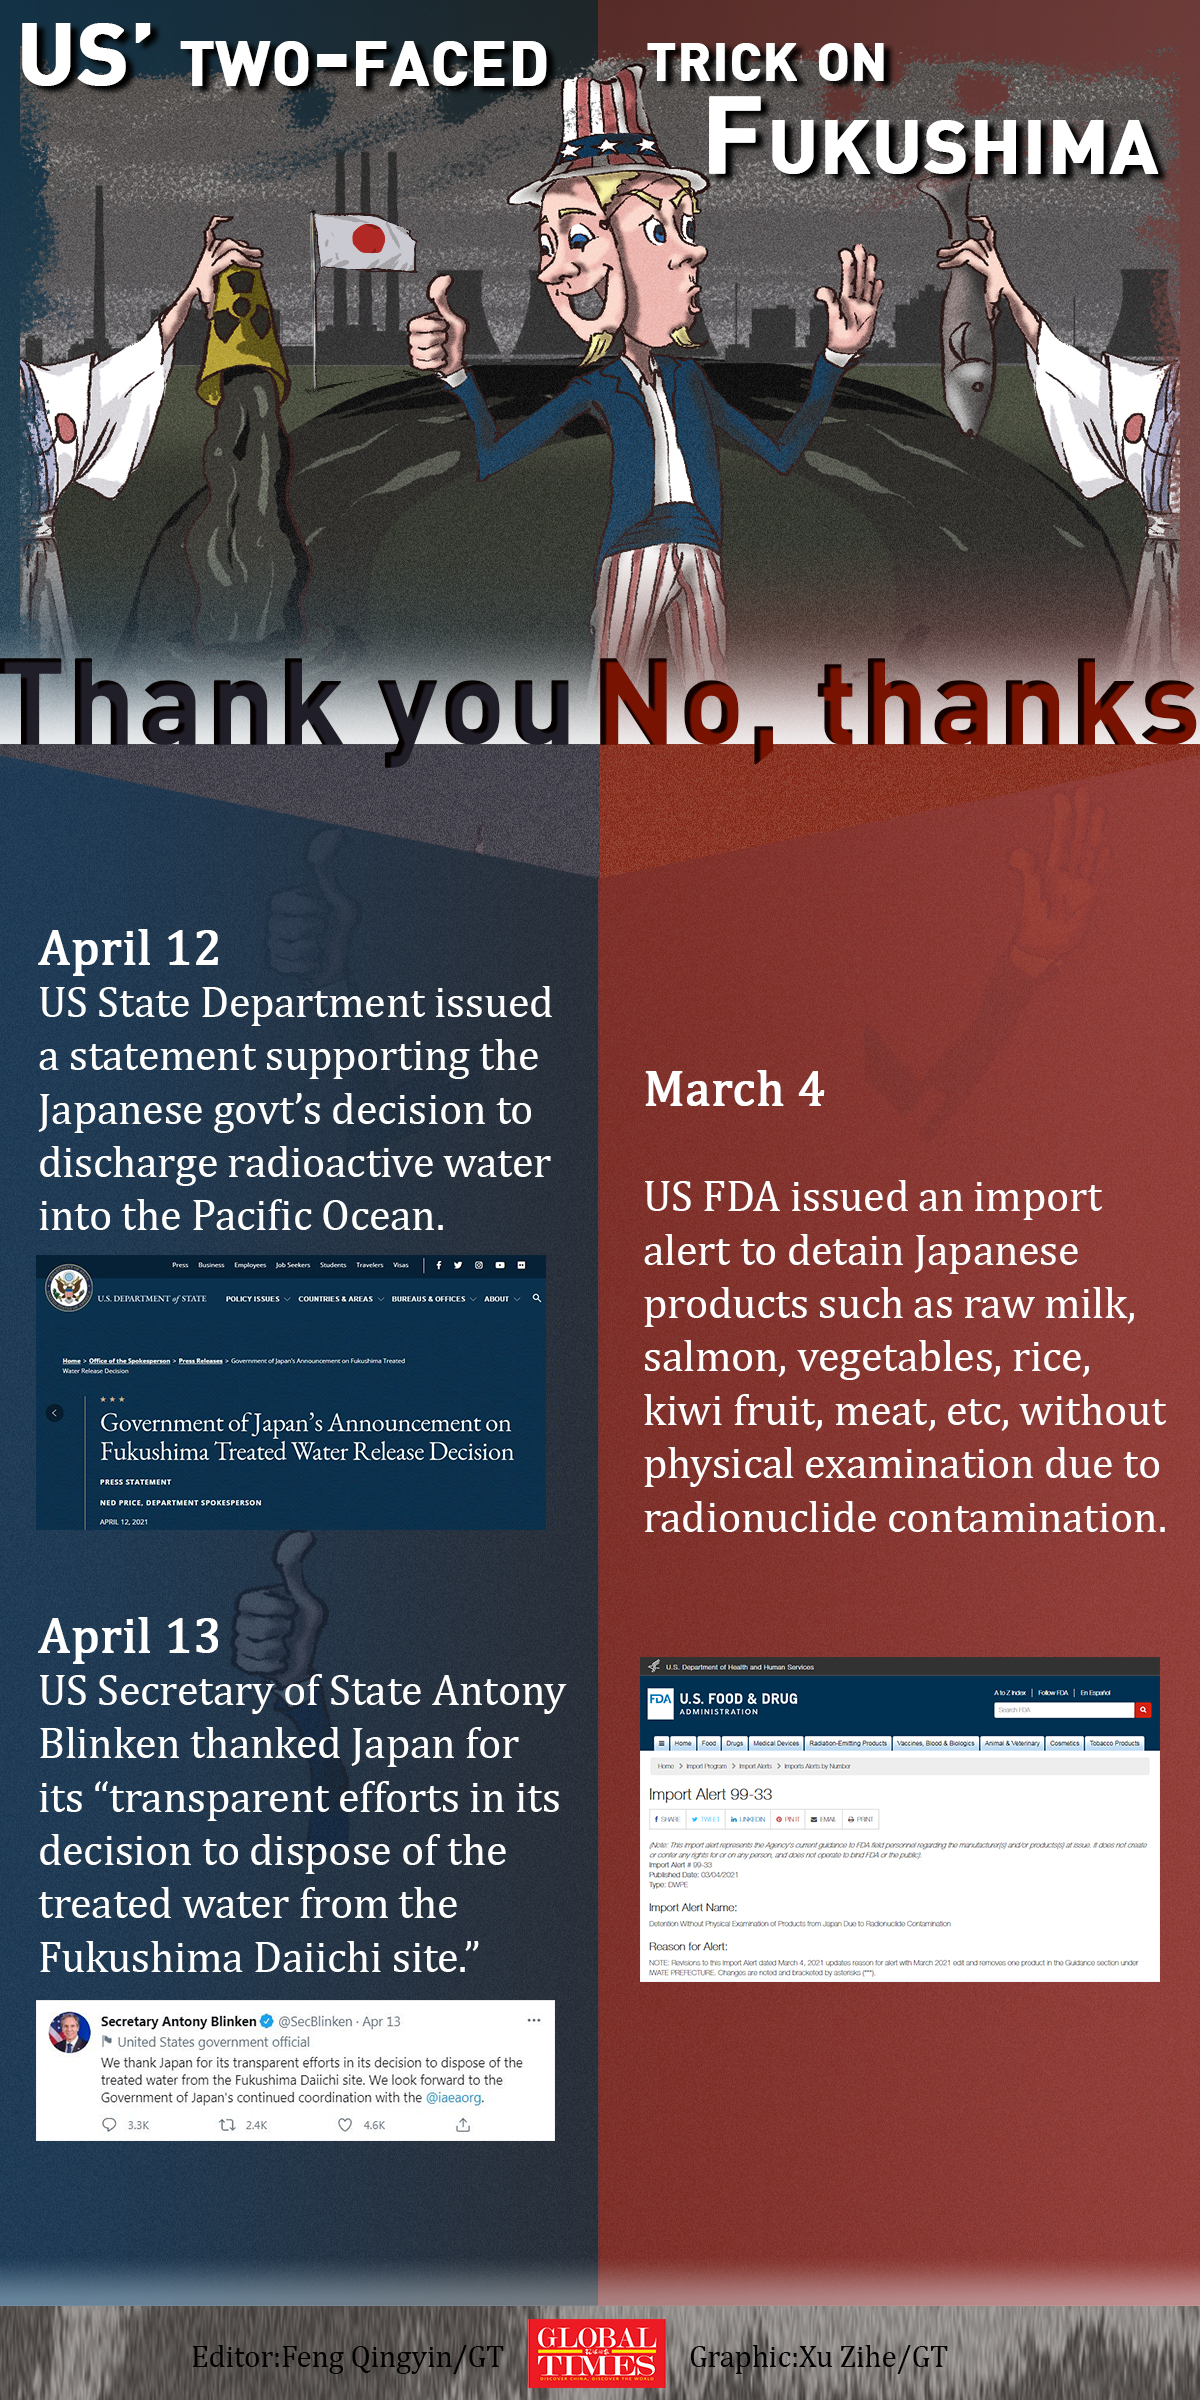 US' two-faced trick on Fukushima.Infographic: Feng Qingyin and Xu Zihe/GT